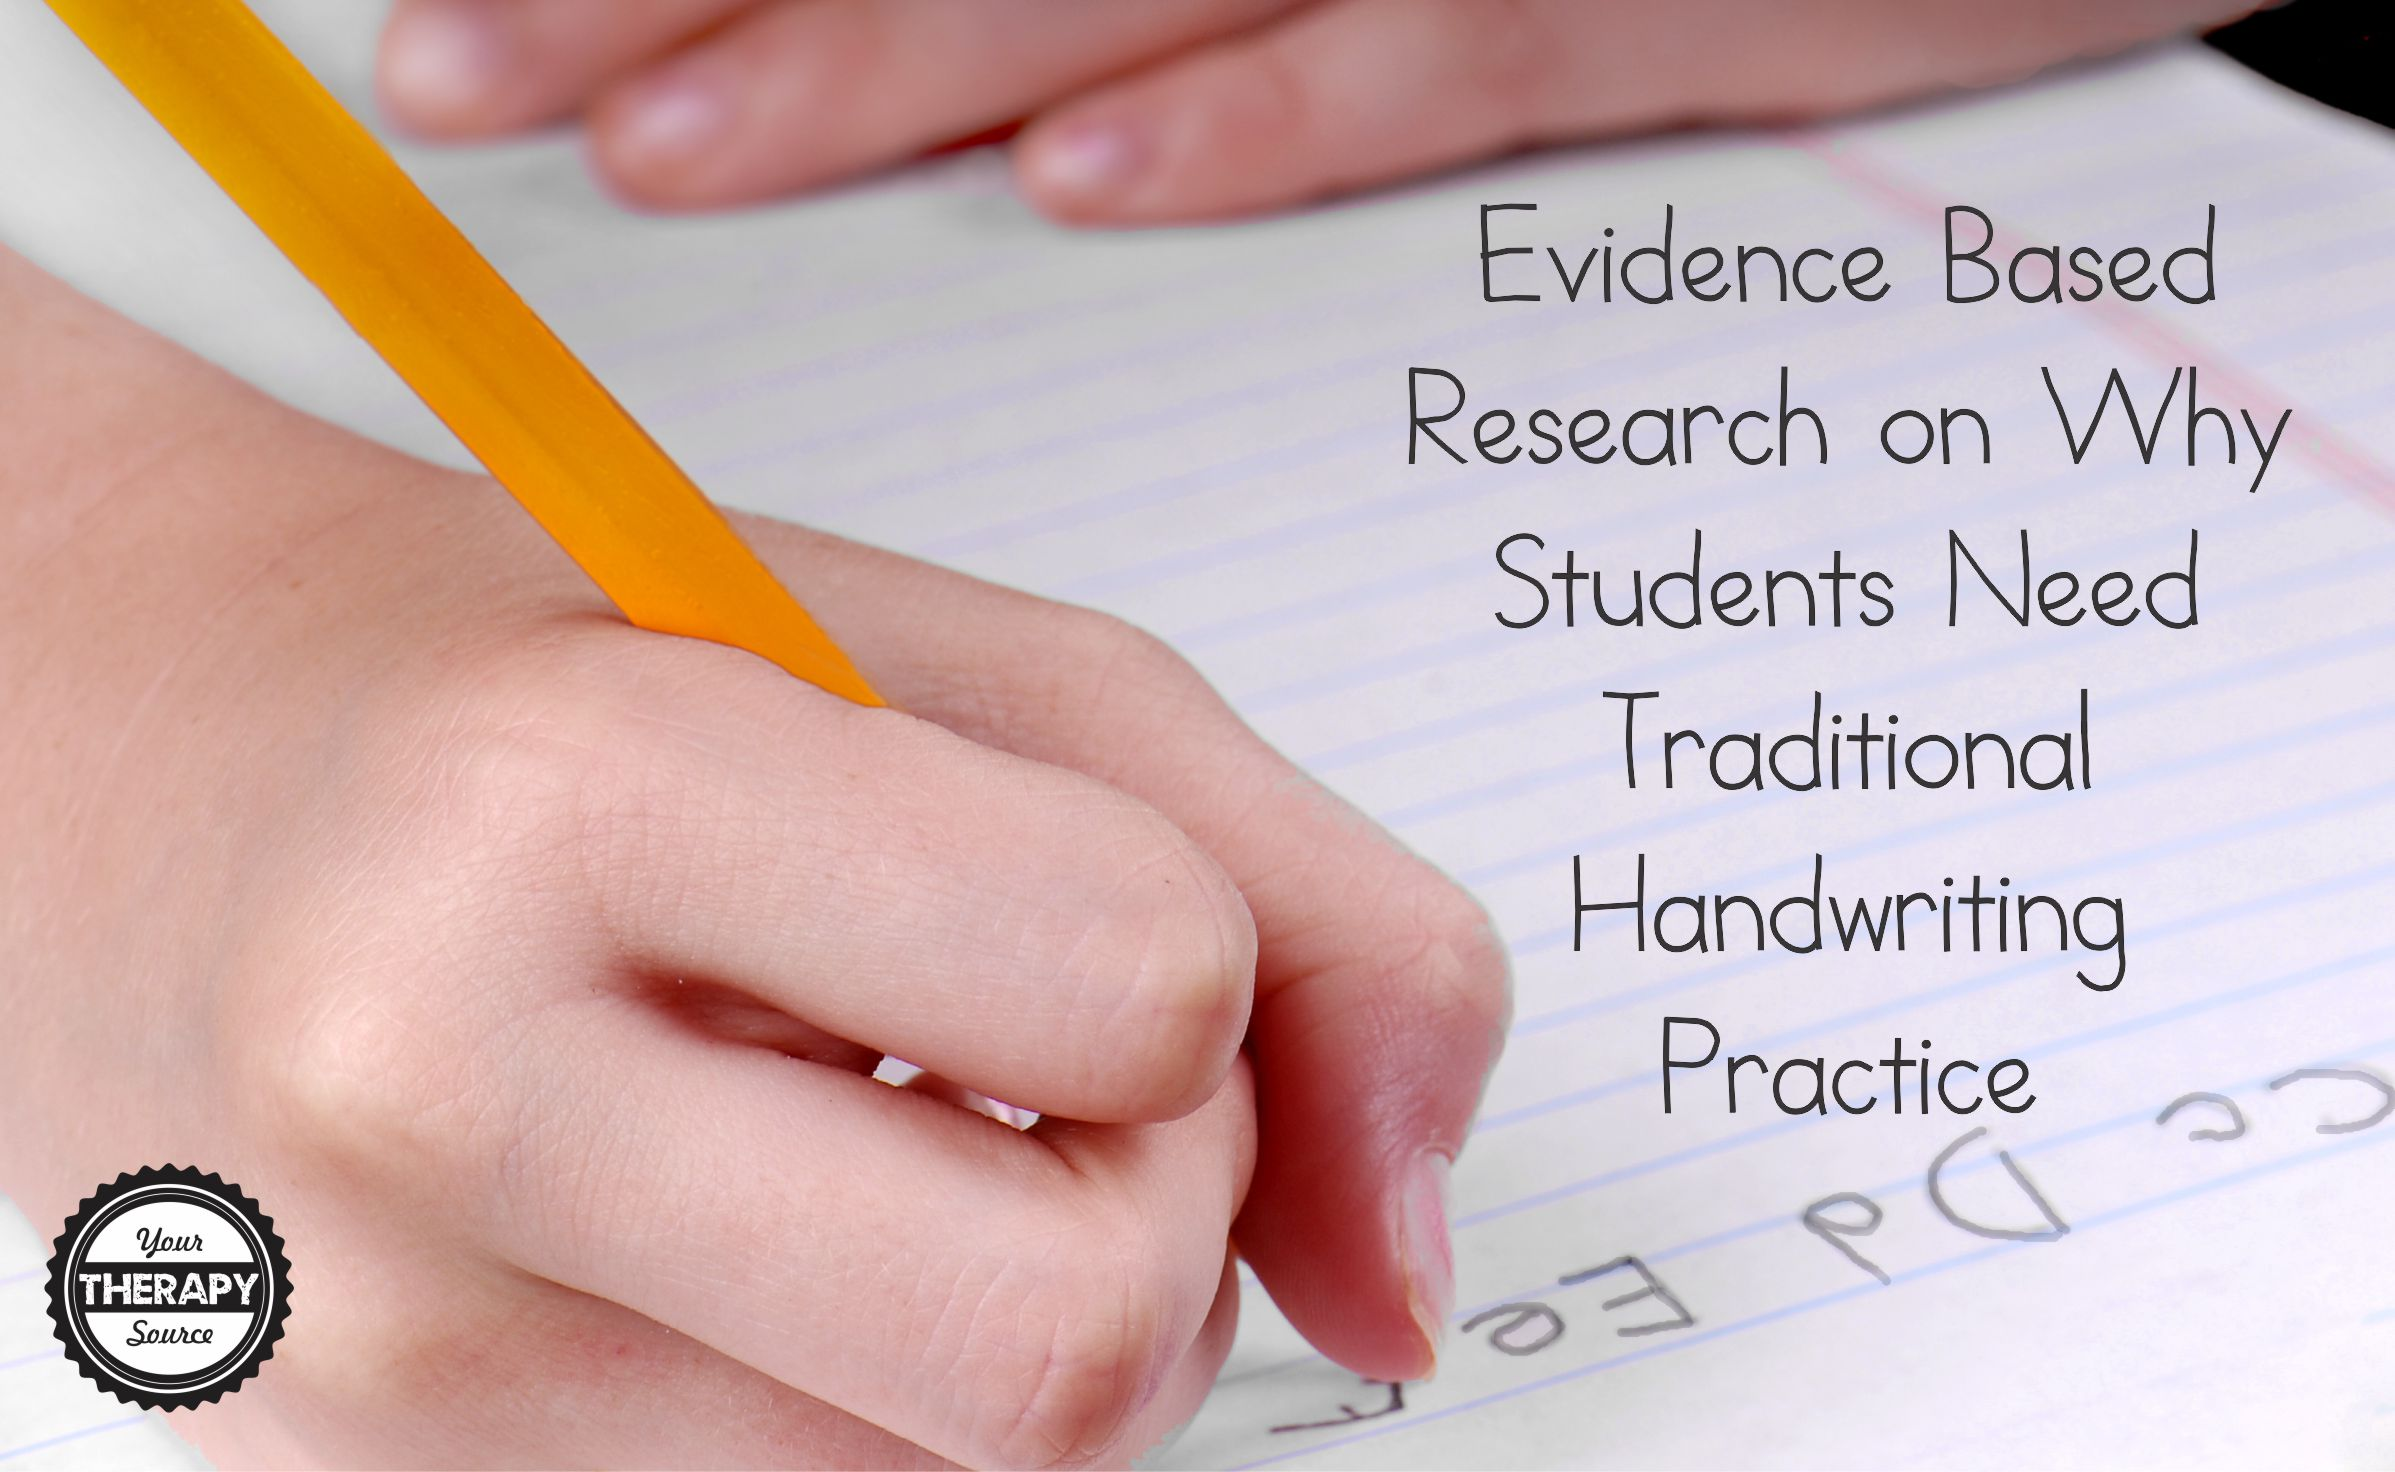 Evidence Based Research On Why Students Need Traditional Handwriting Practice